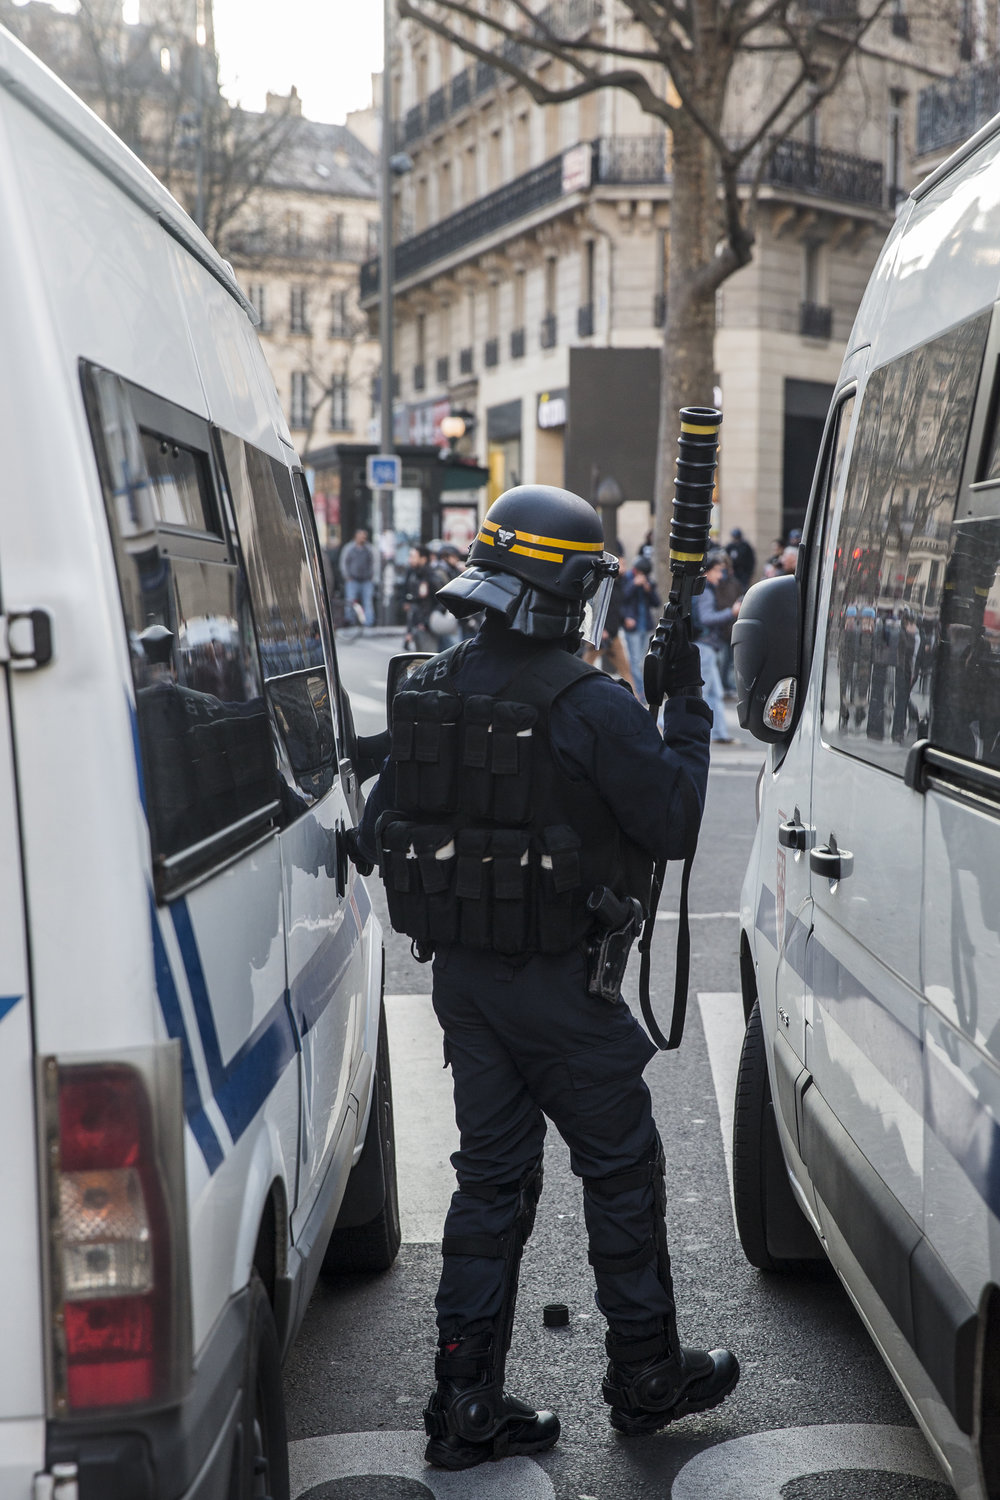 A police officer readies his riot gun as anti police brutality protests turn violent at Republique in Paris, France on February 18, 2017.